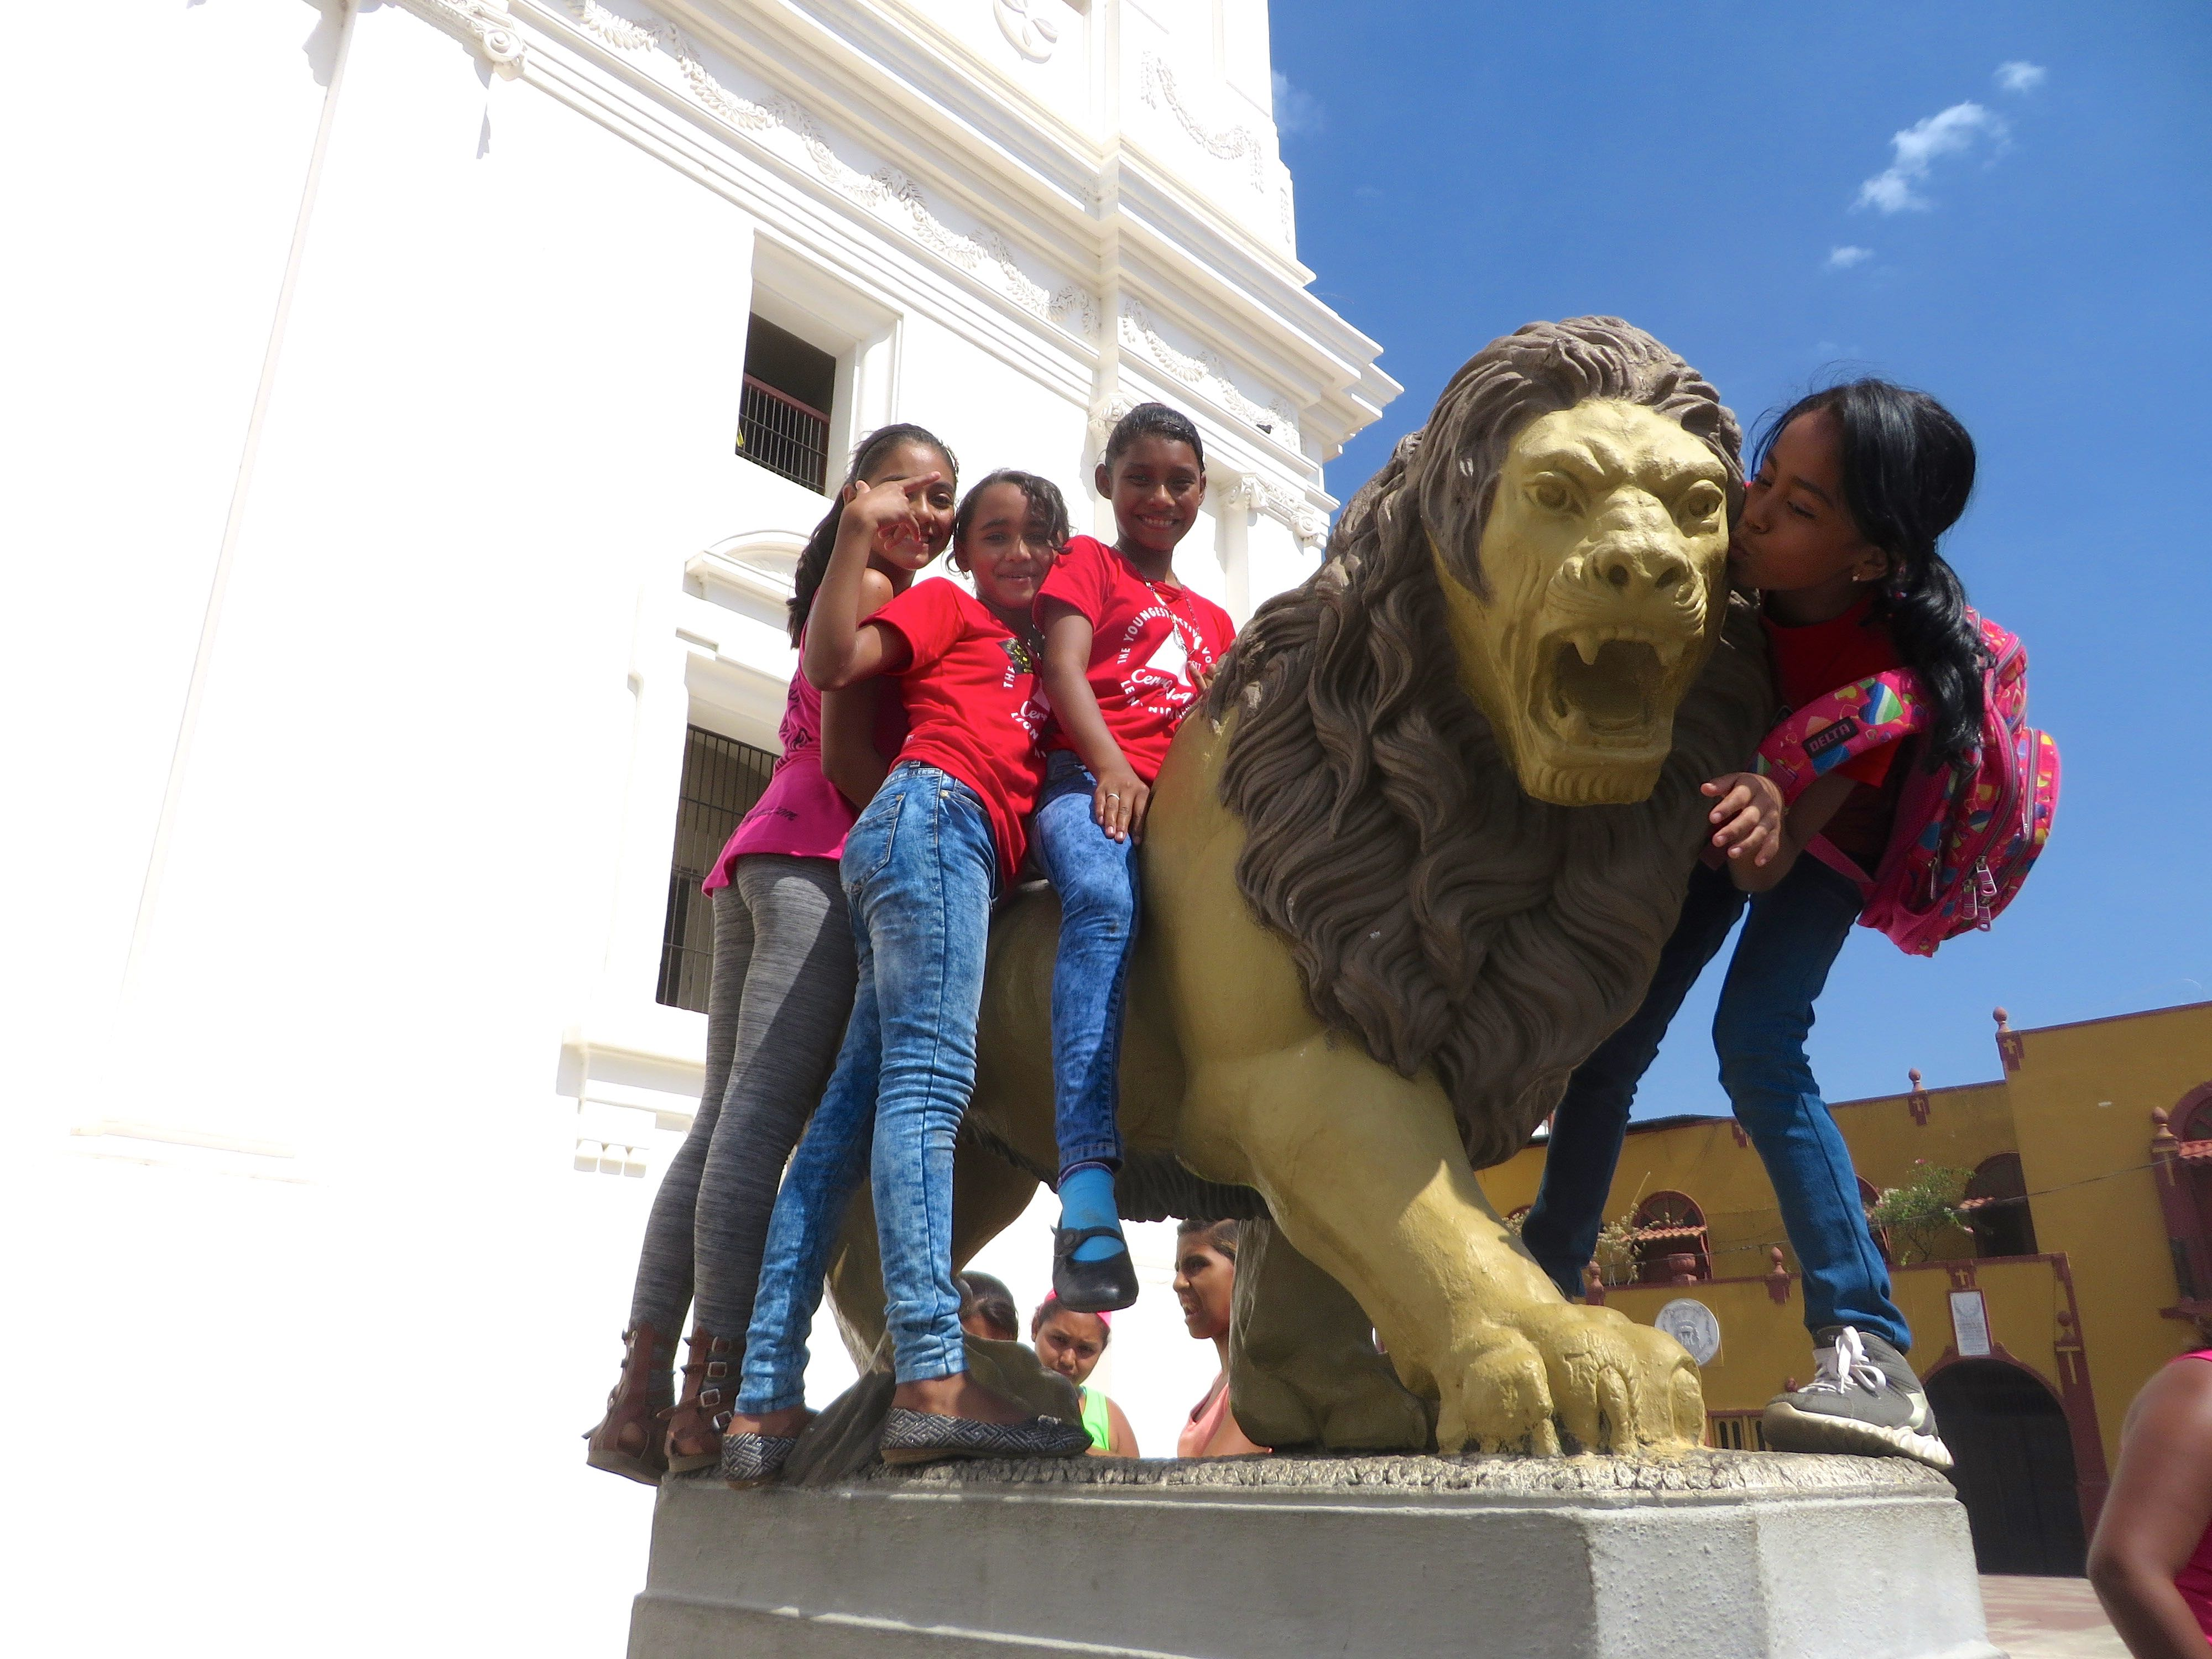 Jennifer, Makeyling, Maryuri and Grethel climbing the lion statue outside the cathedral.